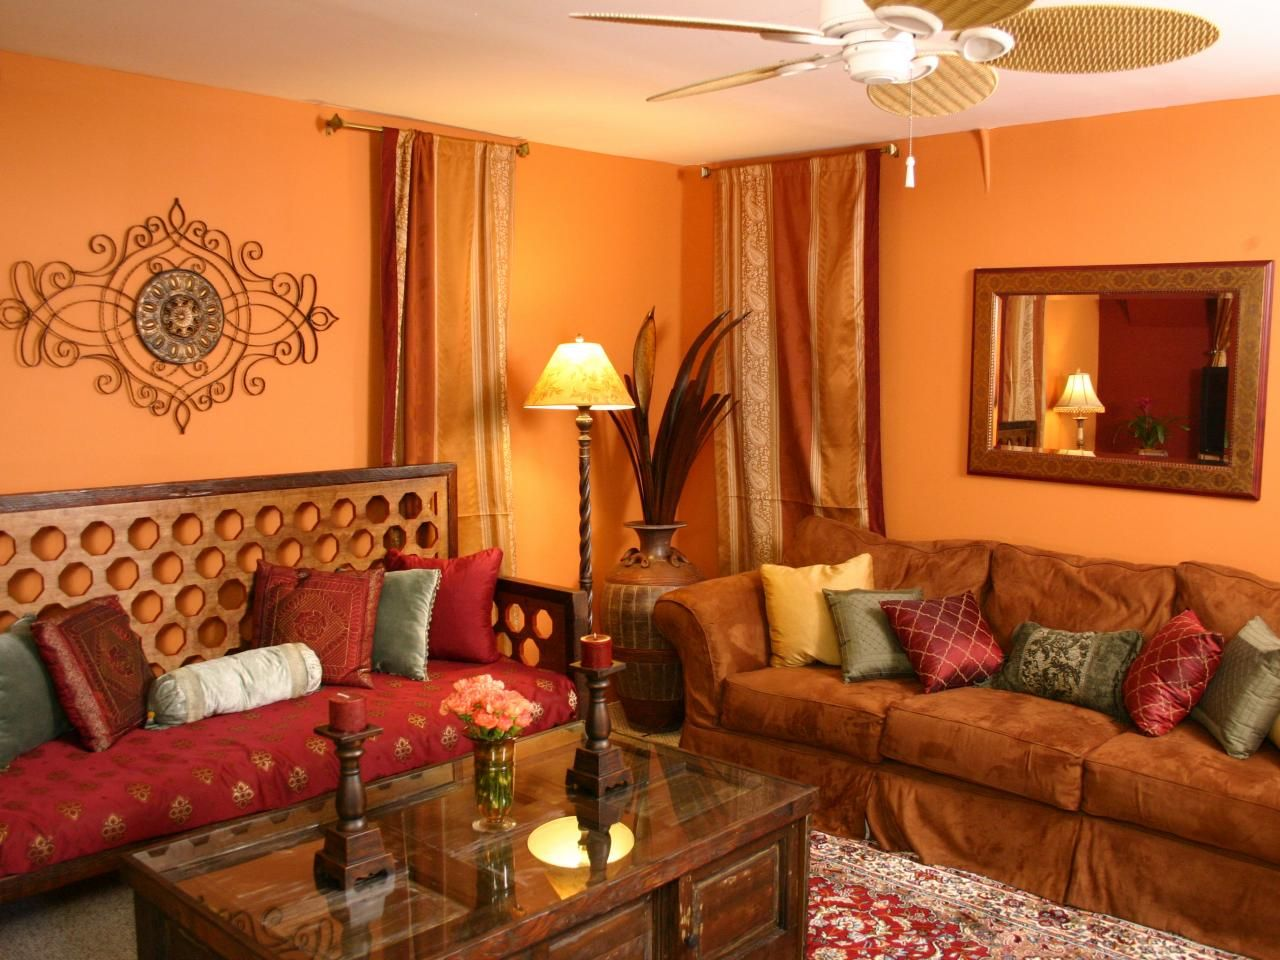 This Eclectic Living Room Features A Rich Orange And Red Color Palette,  Making The Space